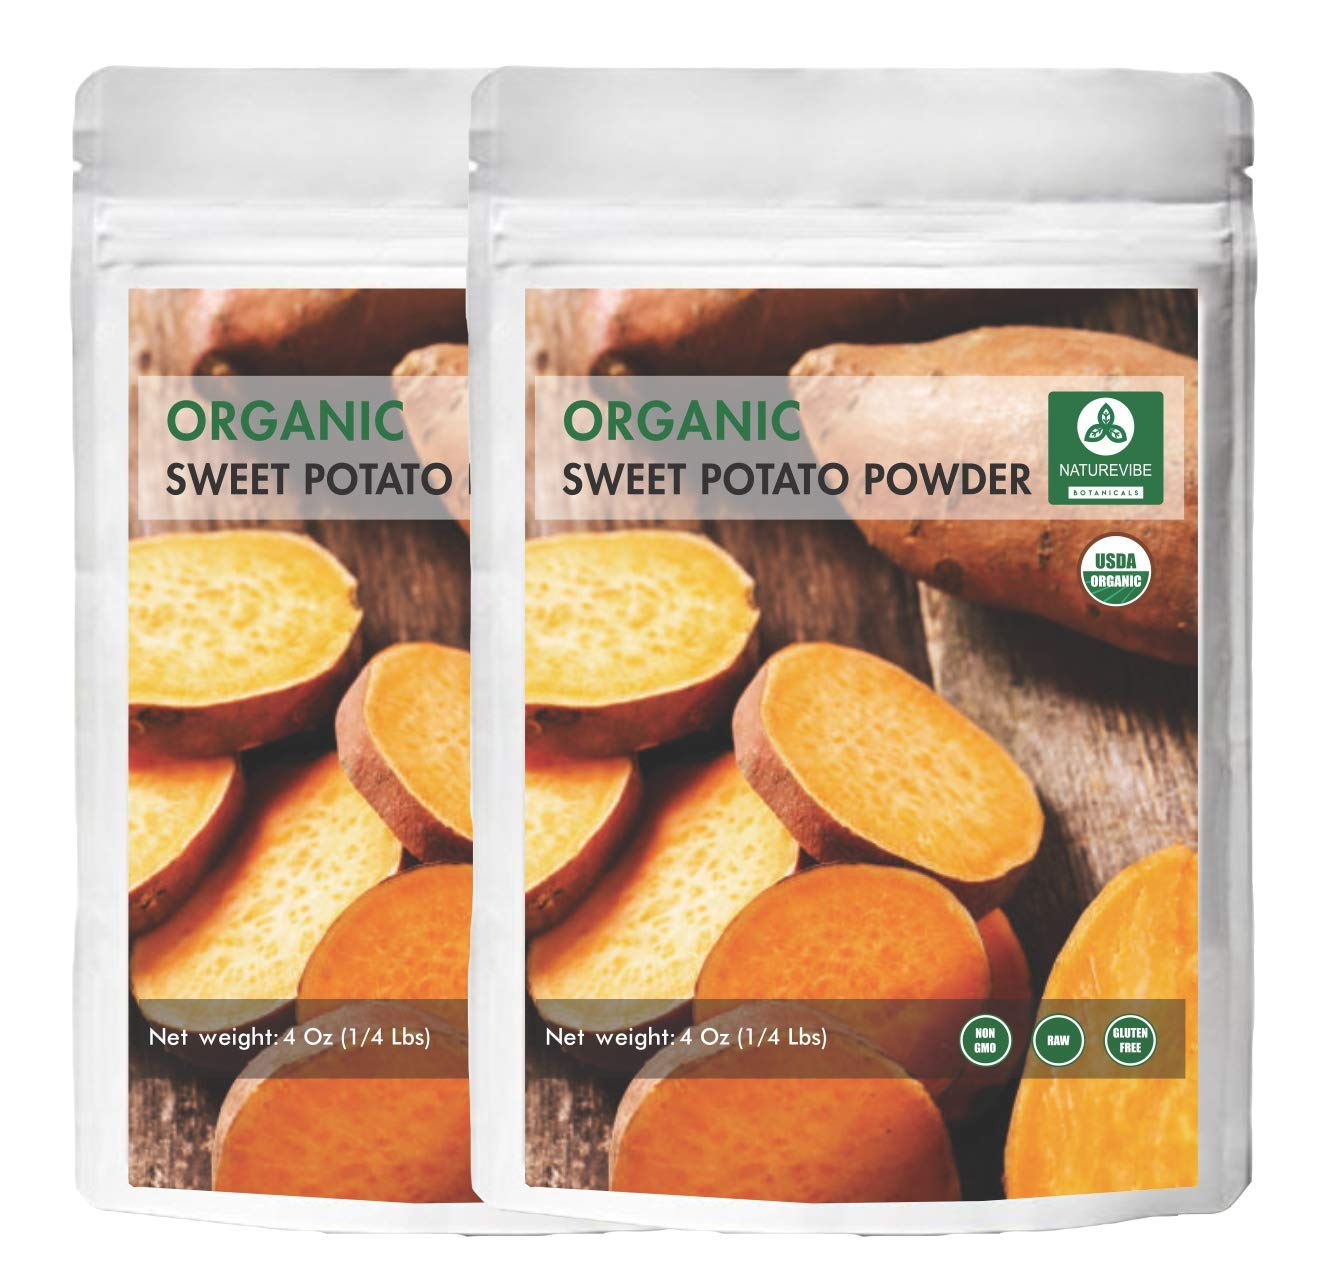 Naturevibe Botanicals Organic Sweet Potato Powder (8oz) (Pack of 2) Ipomoea batatas | Non-GMO and Gluten Free | Supports Digestion and Weight Loss